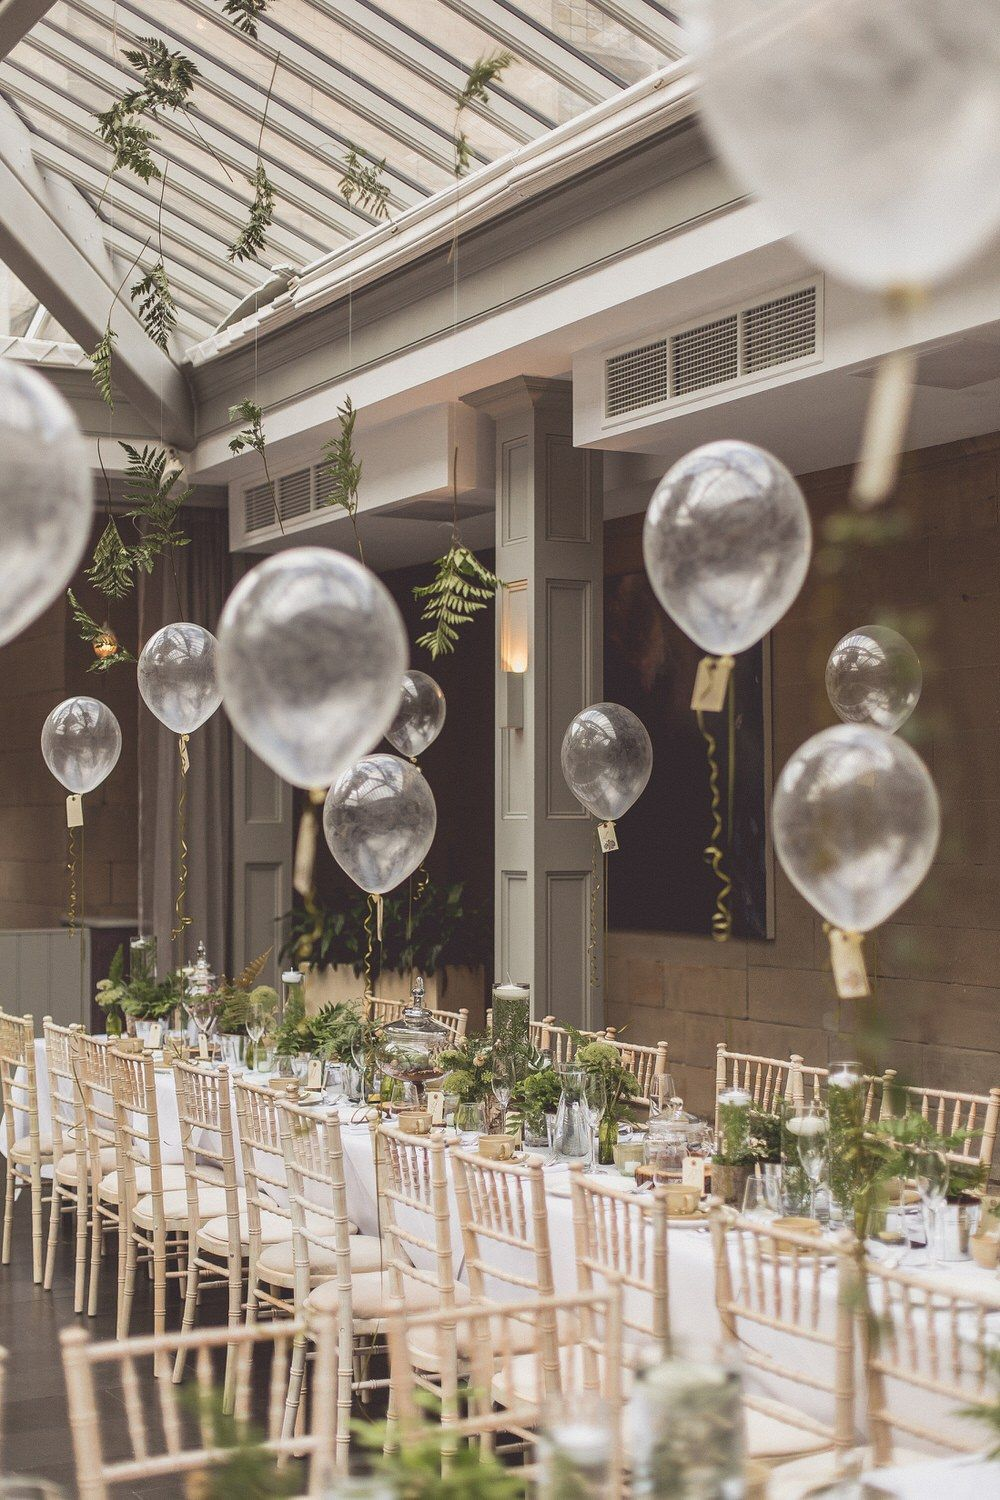 Bridal Shower Hosting Hacks For The Bride To Be 20 Unique Ideas Wedding Balloon Decorations Wedding Decorations Romantic Wedding Decor